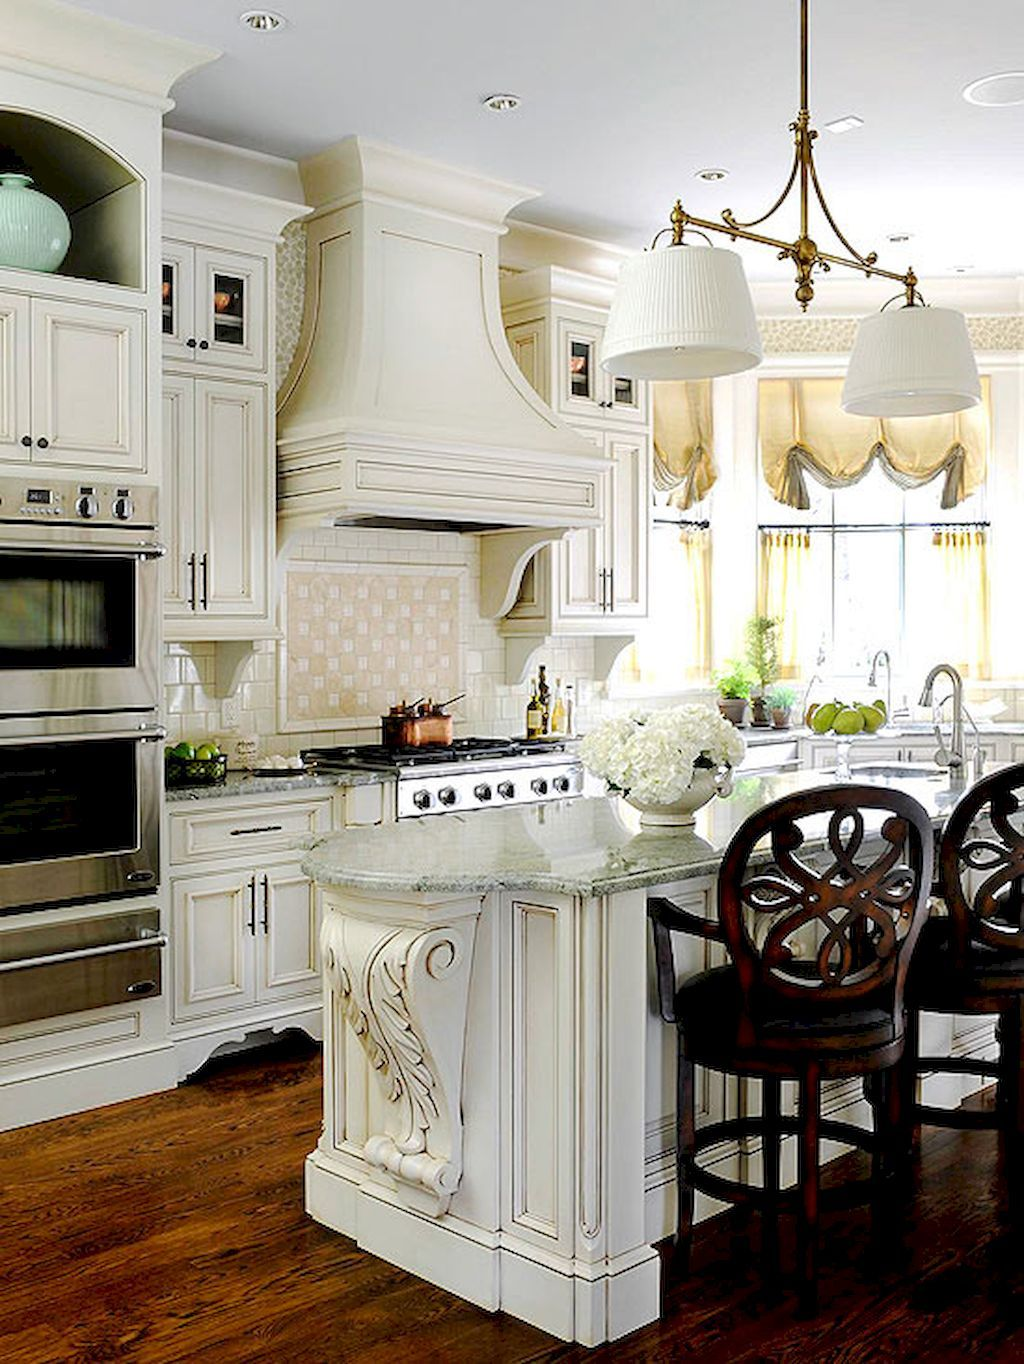 40 amazing french country kitchen modern design ideas 25 country kitchen designs country on kitchen remodel french country id=95693